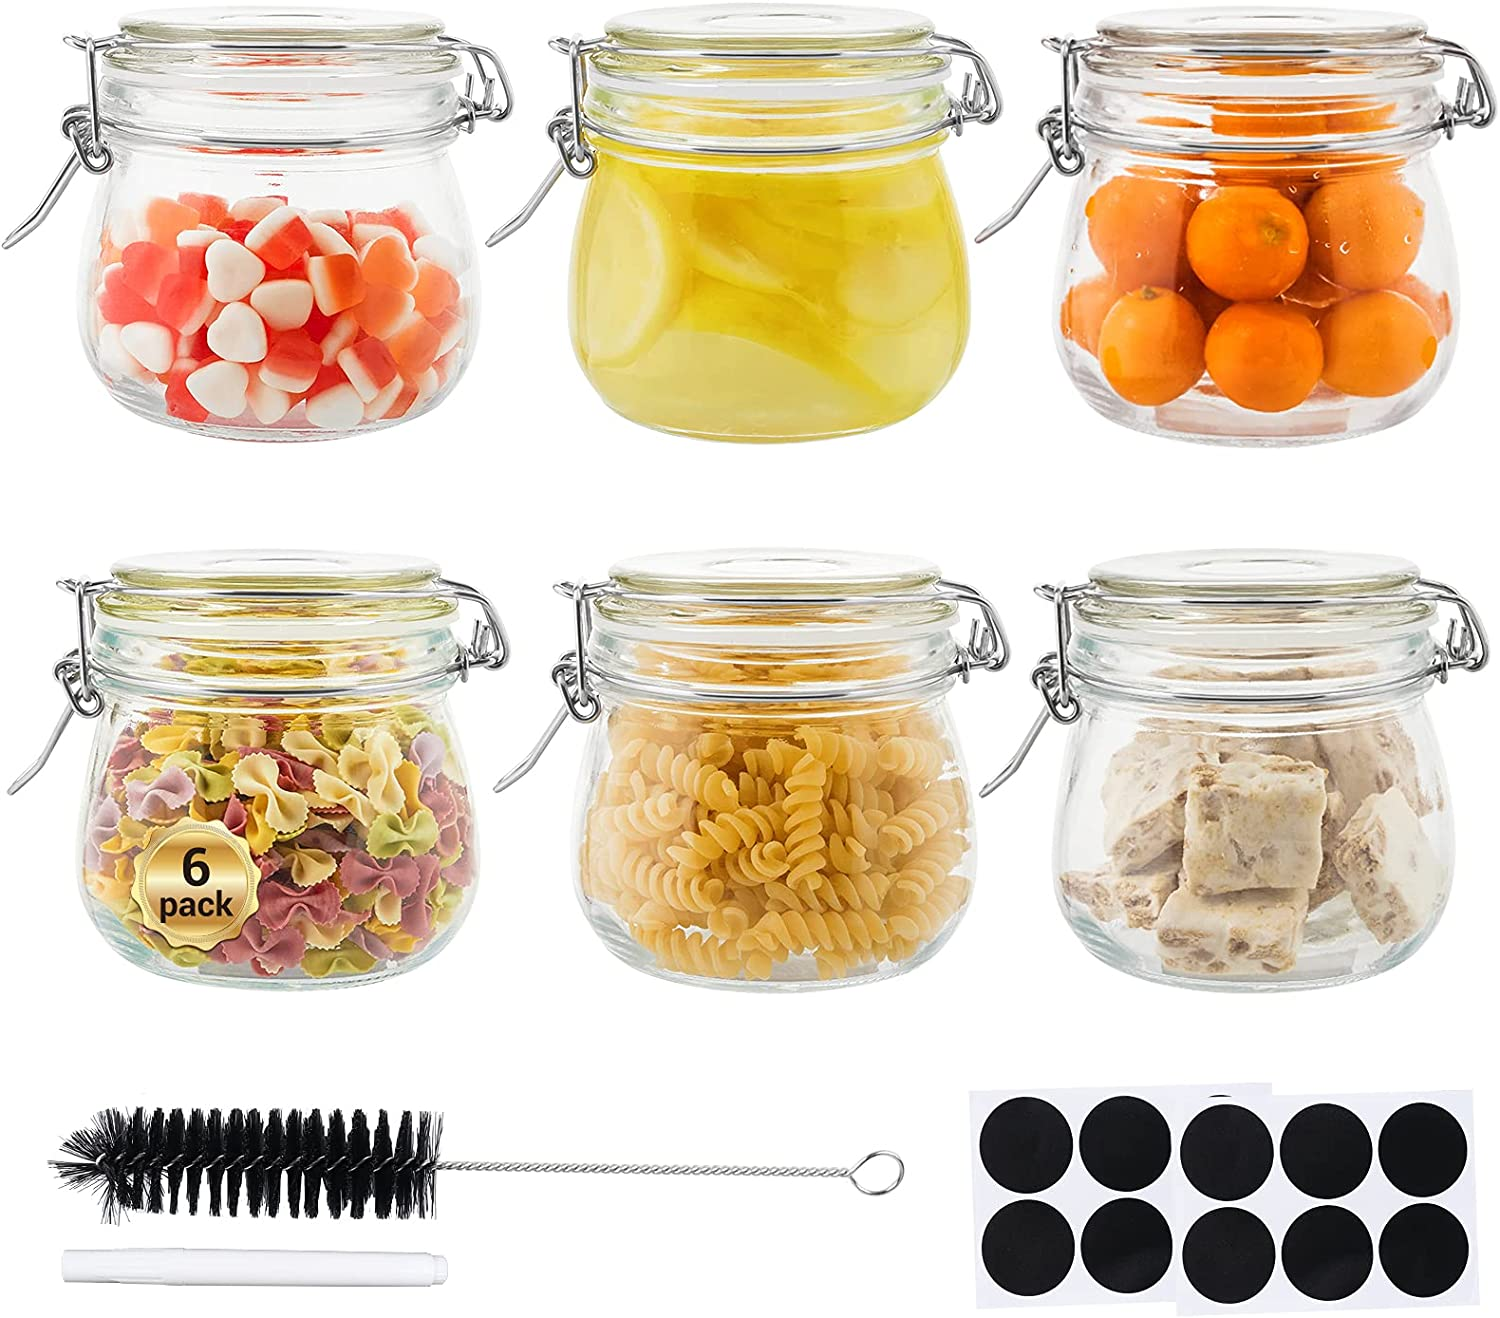 Glass Octopus 17oz Glass Jars with Airtight Sealed Lids, Wide Mouth Mason Jars with Leak Proof Rubber Gasket for Kitchen, Clear Glass Storage Containers for Snacks, Jams & More, 6 Pack(500ML), Round